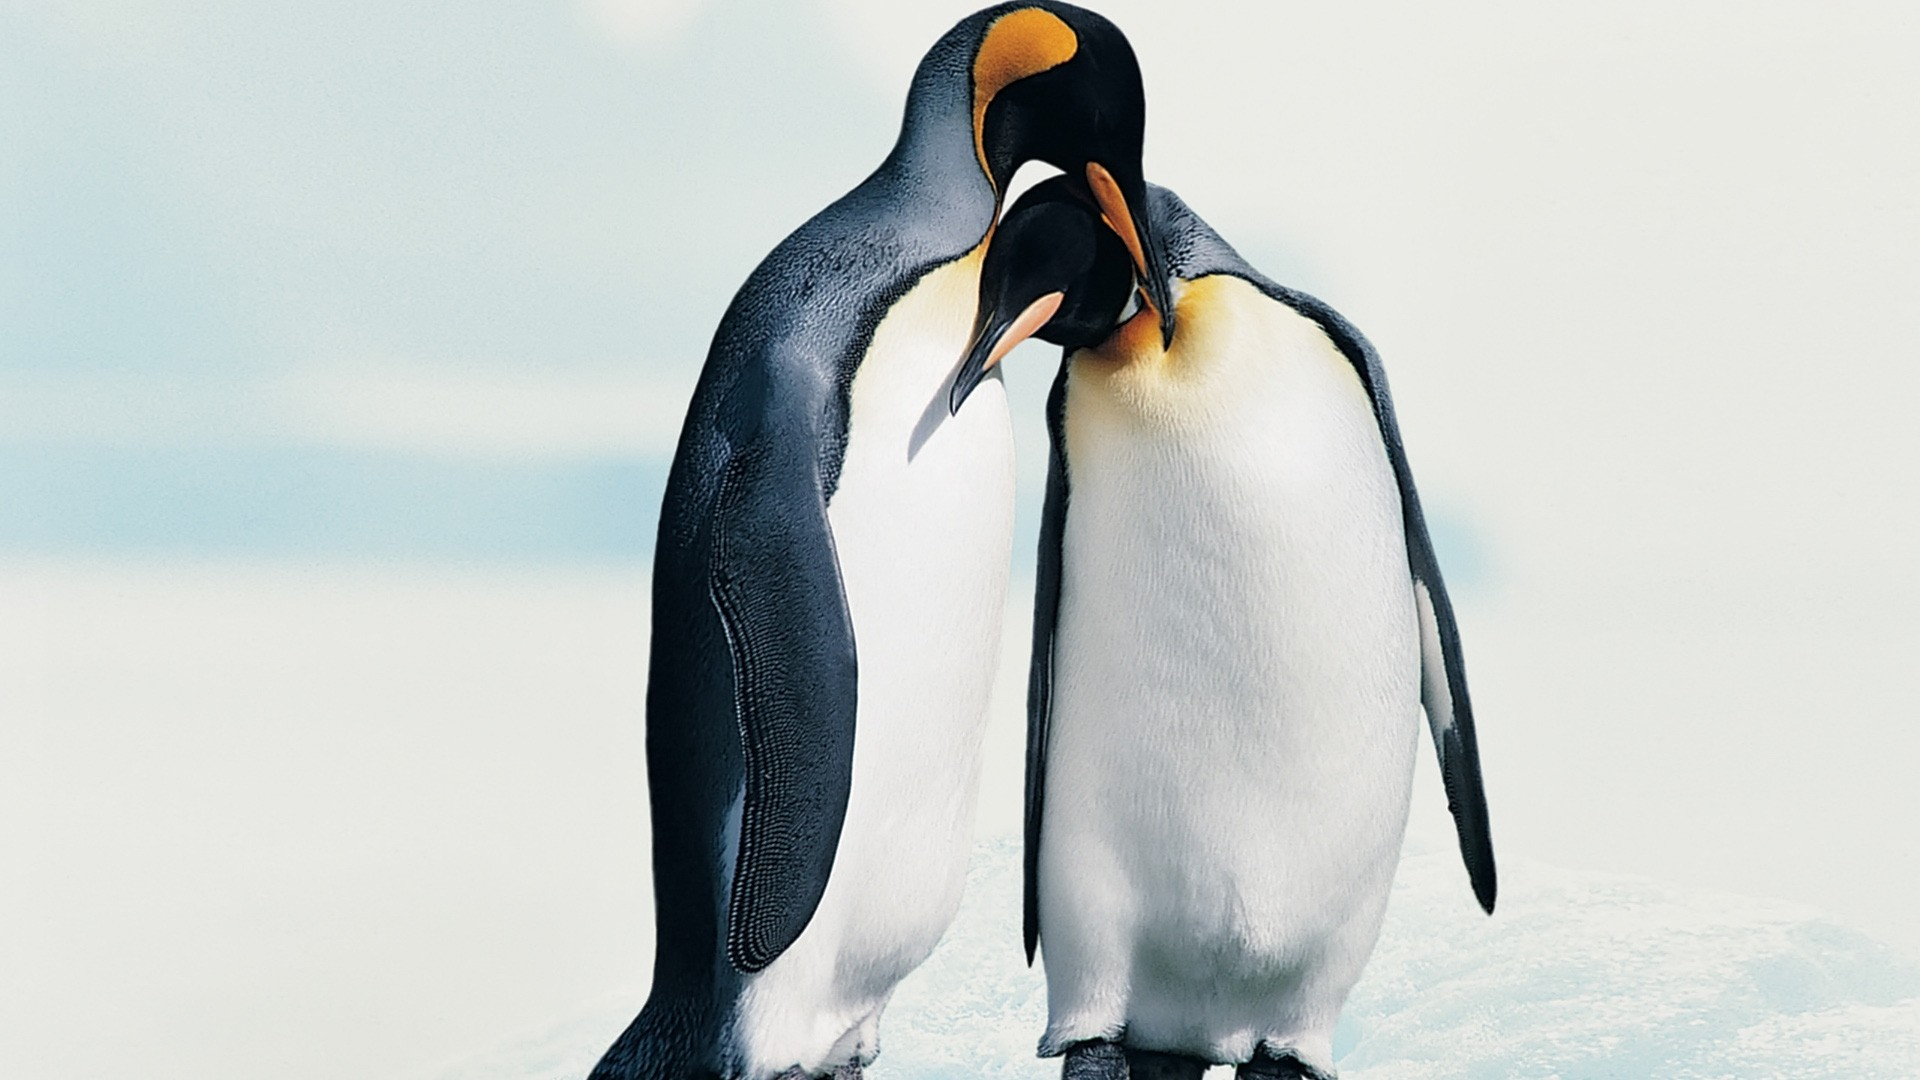 Penguins in love   Animal couple wallpaper 1920x1080